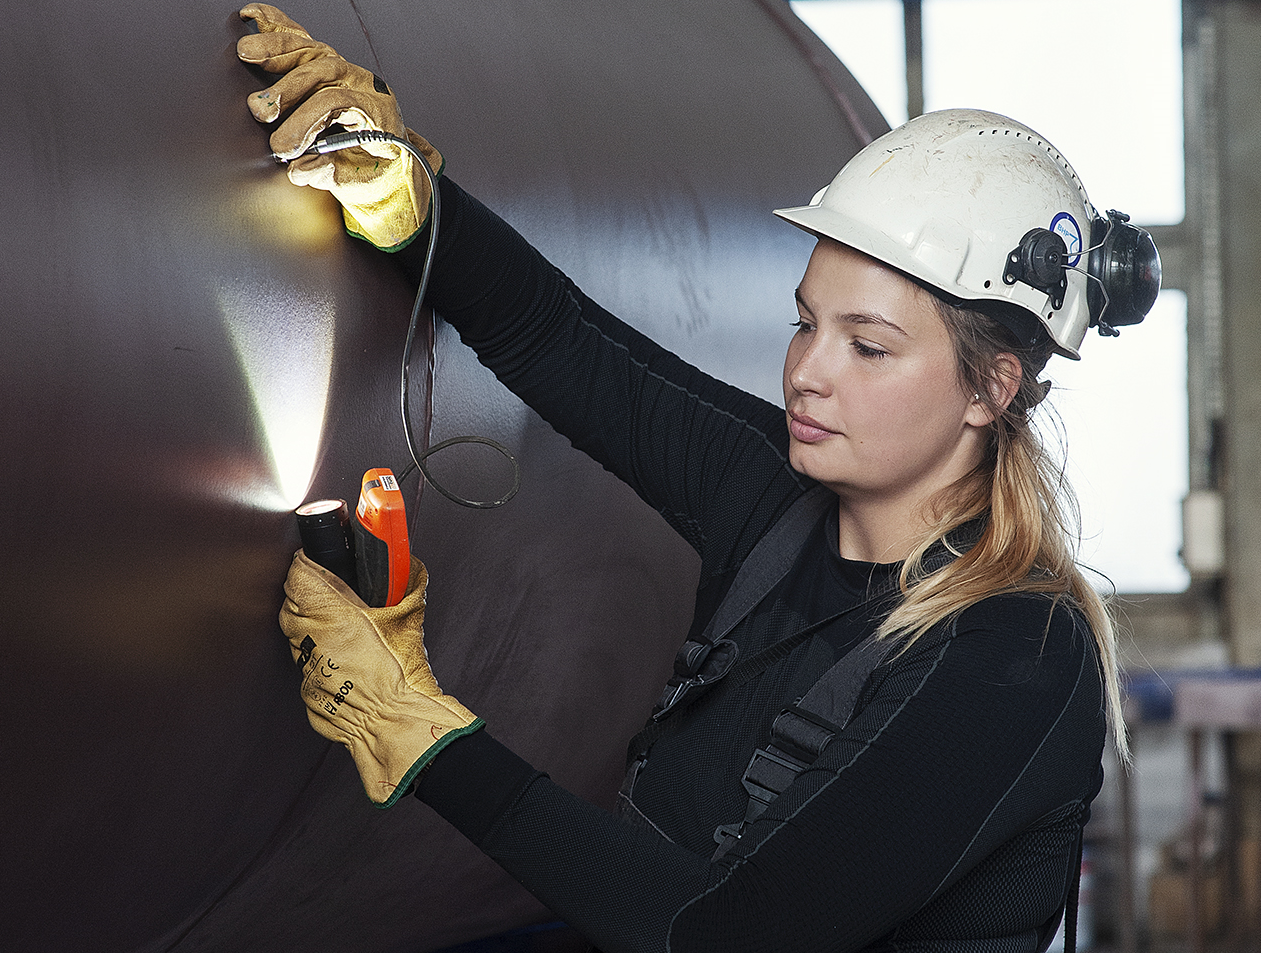 Women build ships too. Report on women's careers in the maritime sector